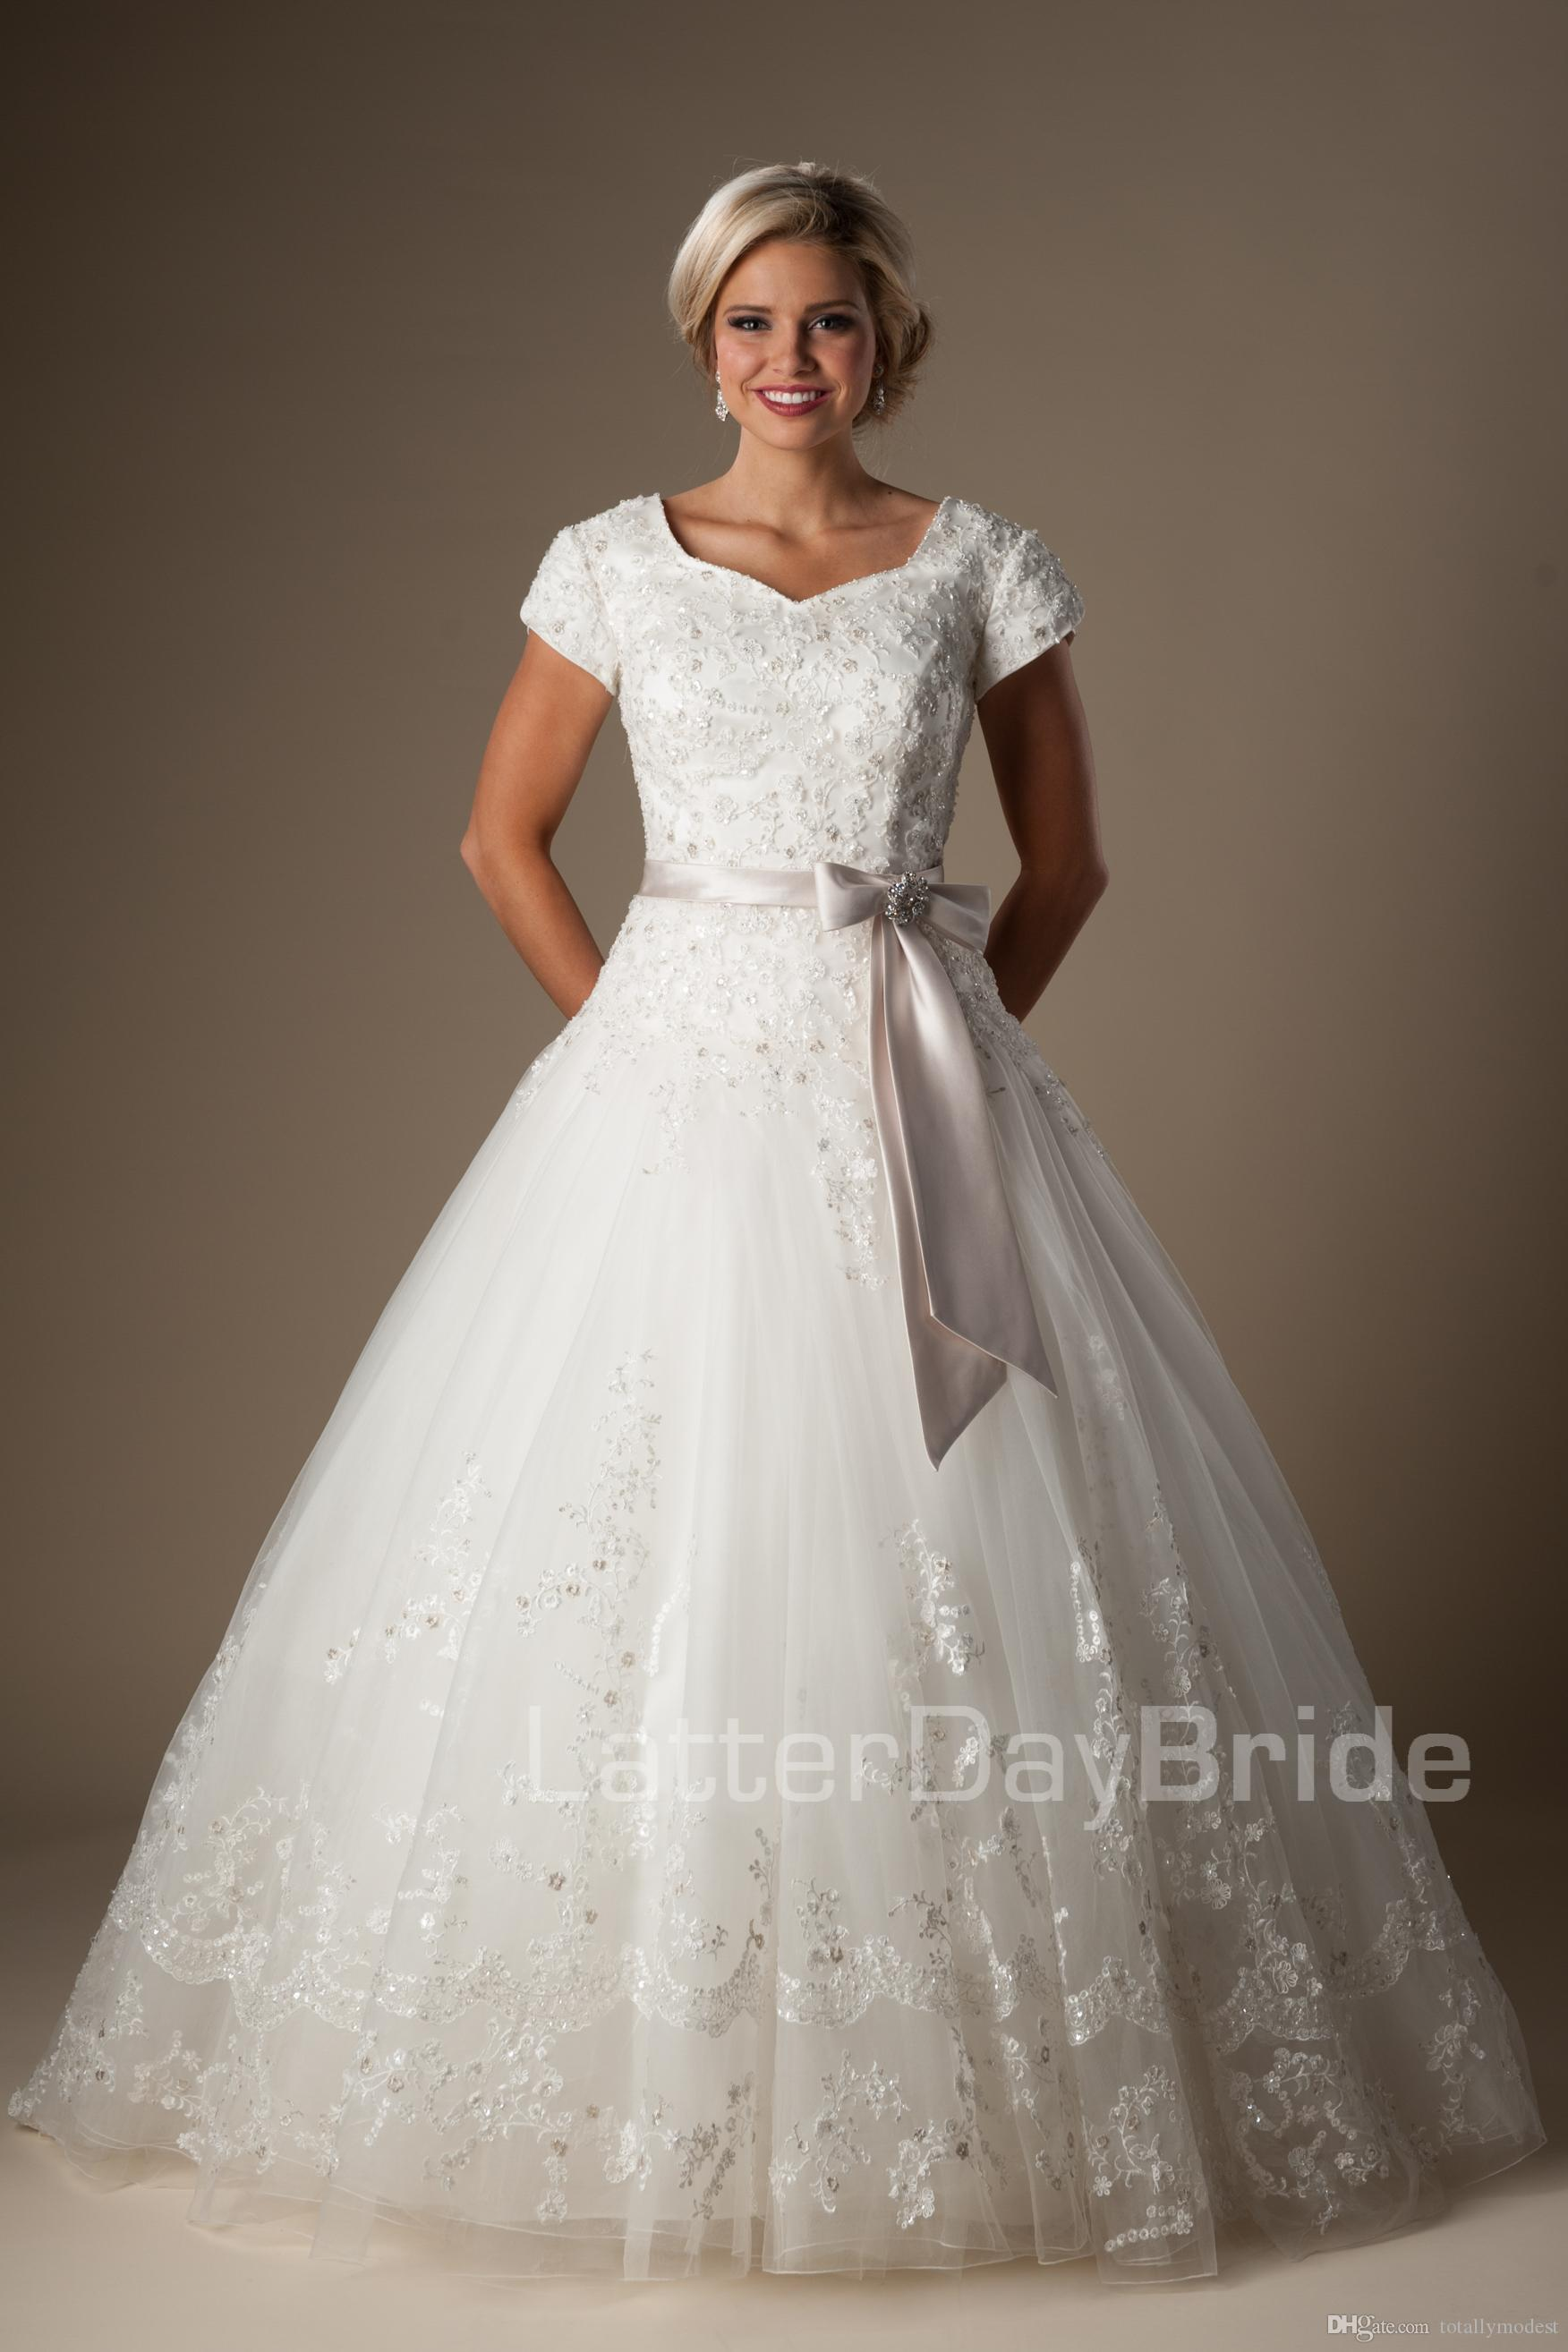 7df282cecc9c Beaded Lace Tulle Ball Gown Modest Wedding Dresses With Short Sleeves  Princess Temple Wedding Gowns Cap Sleeves Formal Bridal Gowns Sparkly  Dresses ...